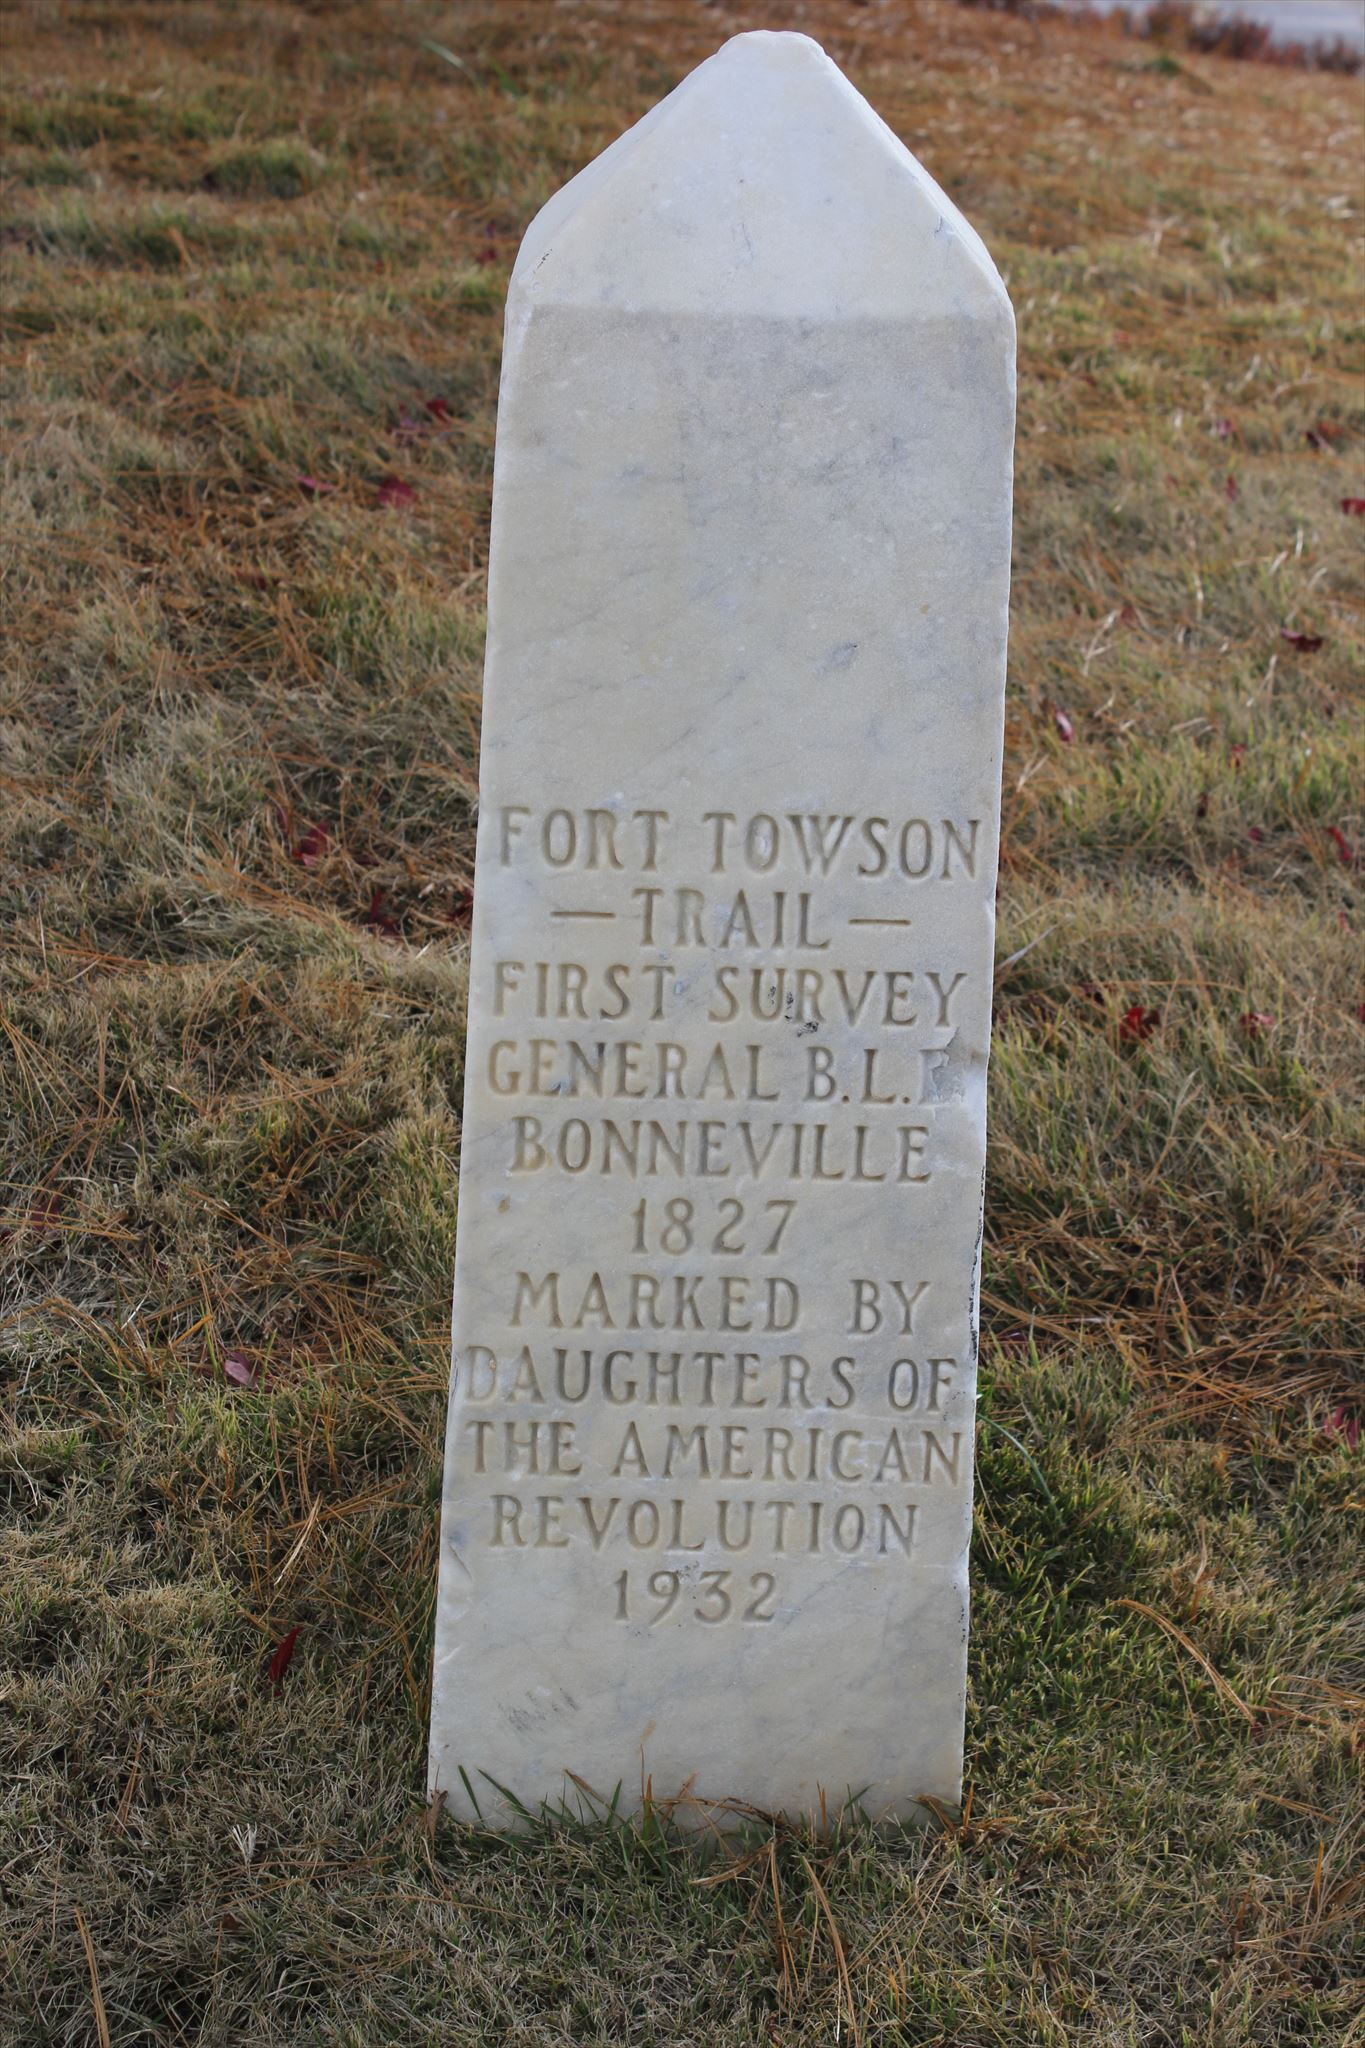 fort towson chat sites Fort towson was established to protect the choctaw indians in 1824 the fort gave the us government a military presence on the frontier and protected the southern border of the united states the post was the ending point for the choctaws removal in 1832-1834.